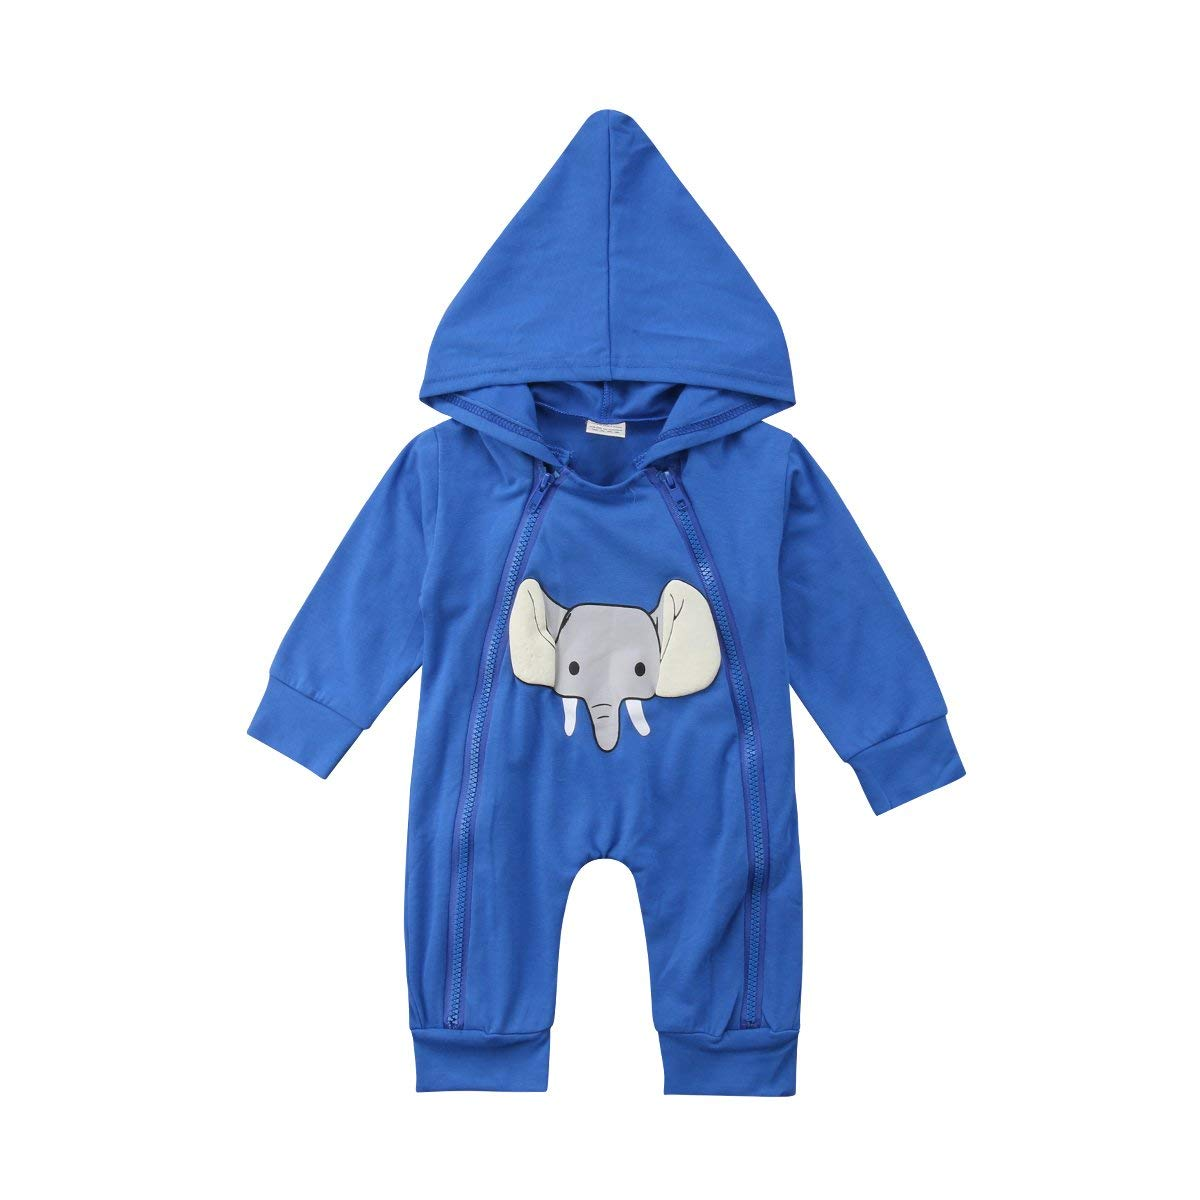 cb2d3433e Newborn Infant Baby Boy Girl Cartoon Elephant Zipper Romper Jumpsuit  Sleeper Bodysuit One-Piece Outfits